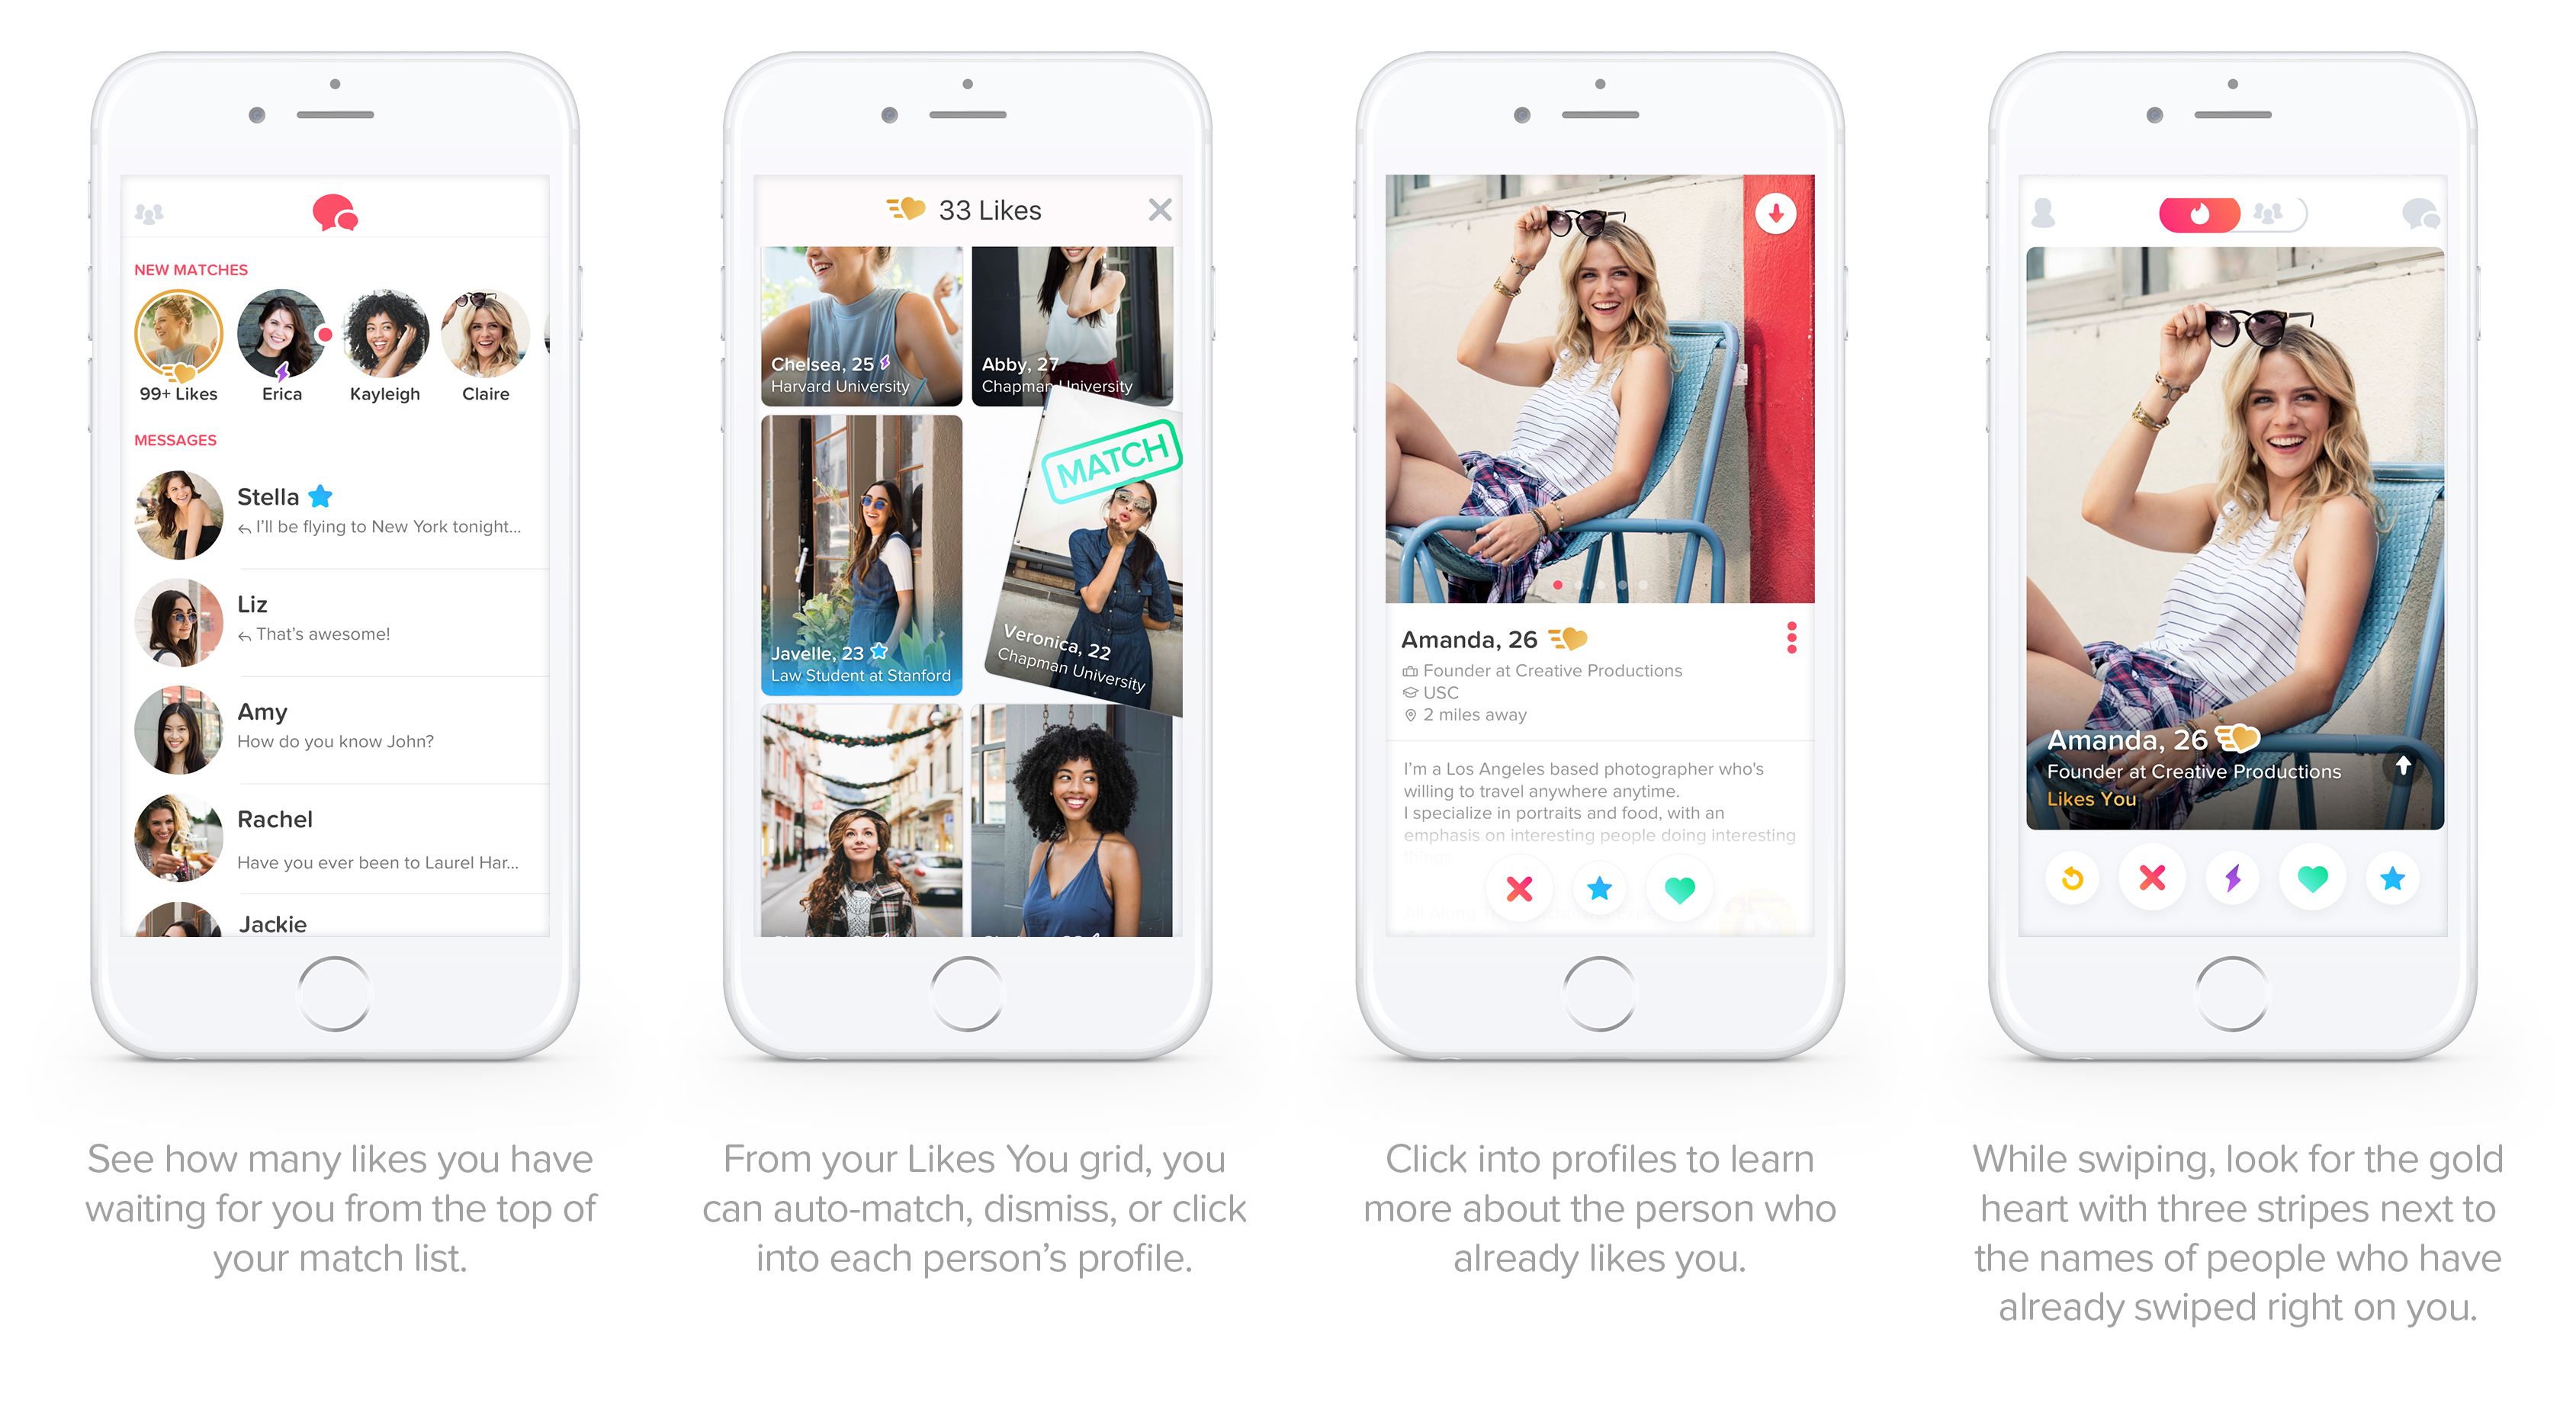 Find out who liked you on tinder